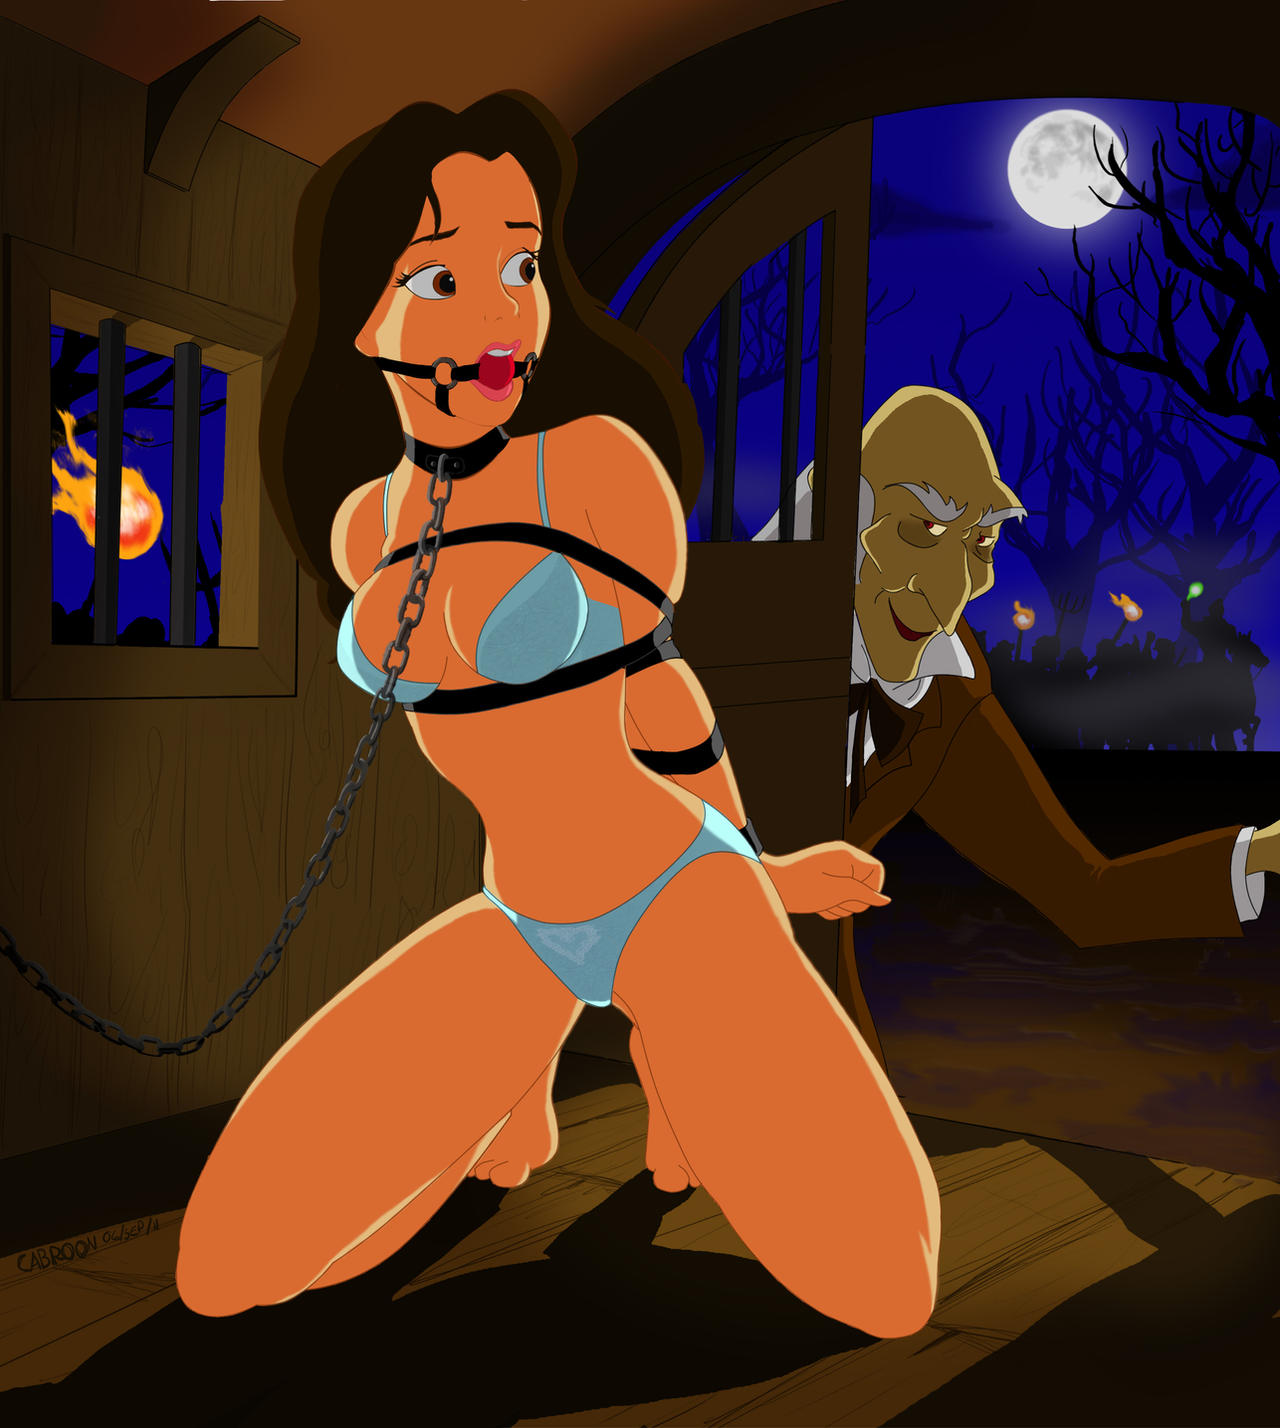 Enjoys Cartoon bondage disney